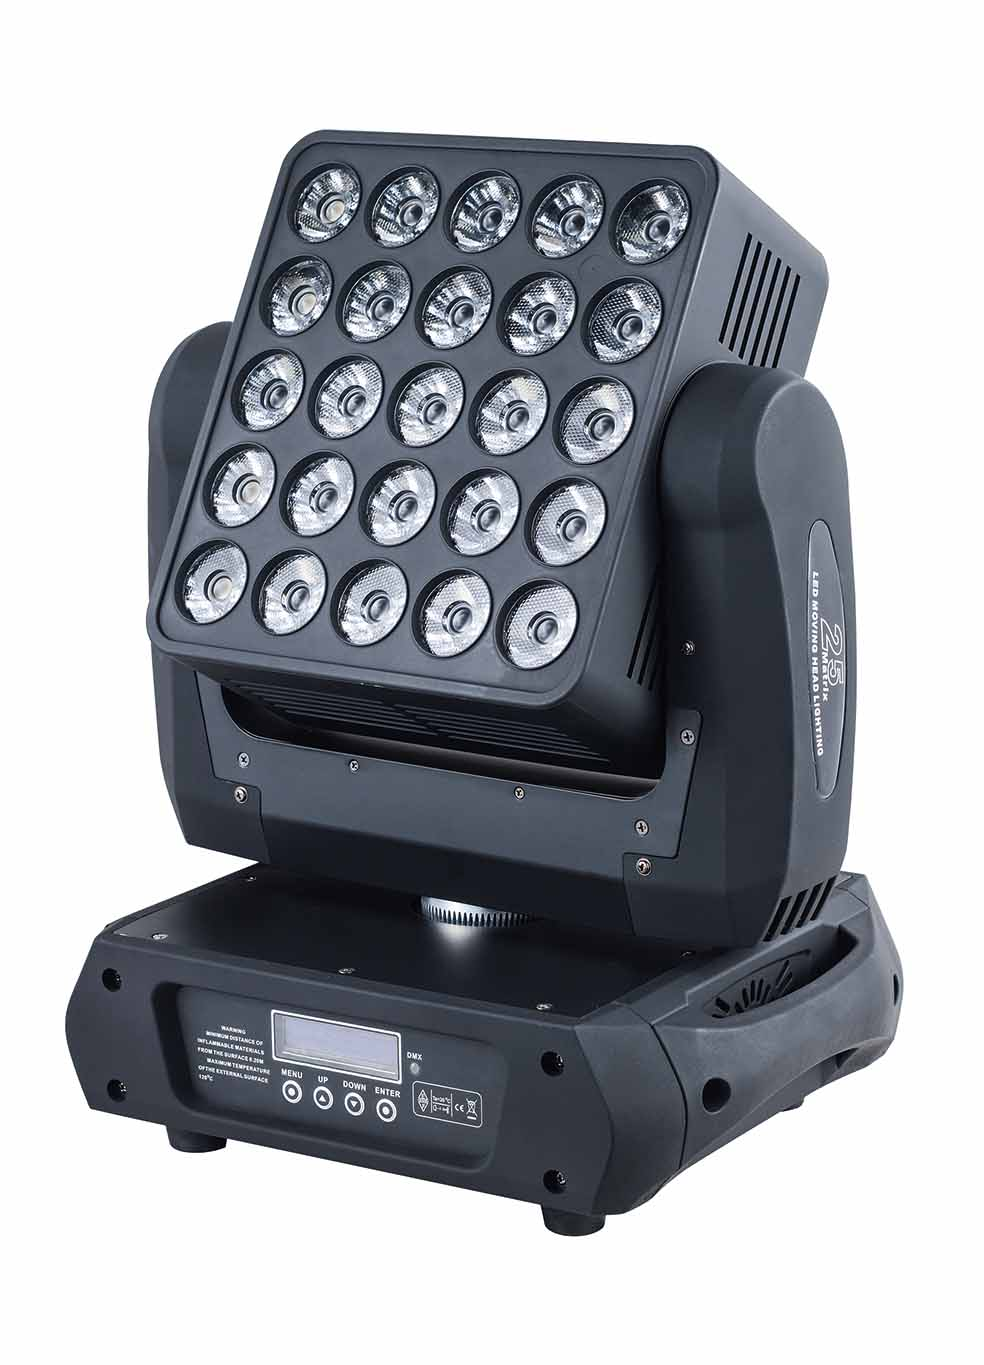 4pcs/lot LED blinder light 25X12W 4 in 1 RGBW led beam moving head matrix light for disco light blinder m45 x treme